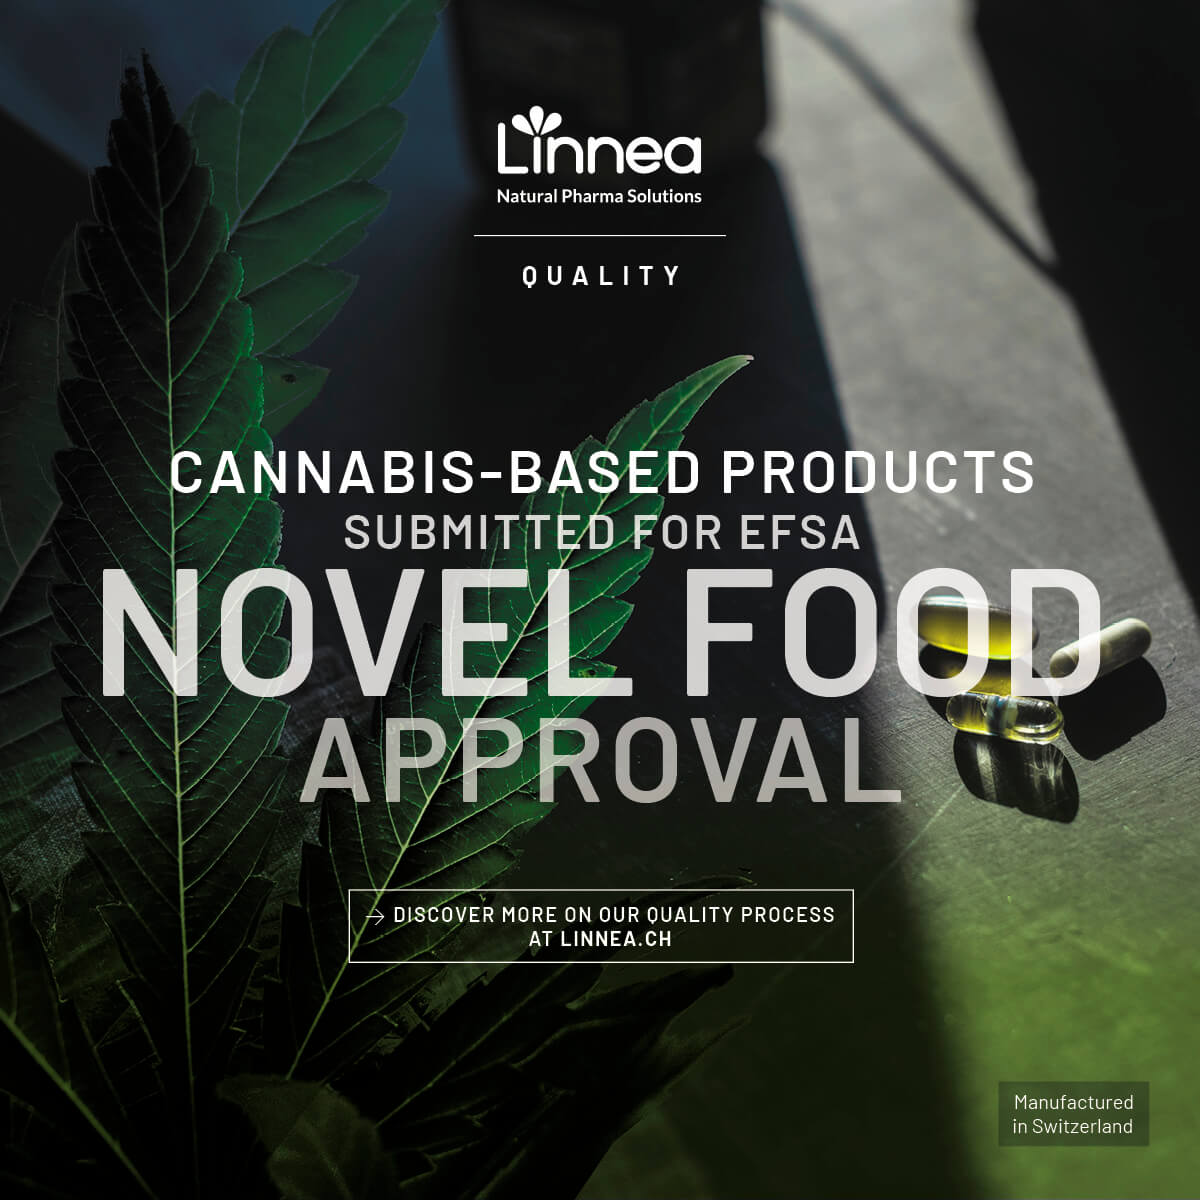 Linnea Cannabis-based products submitted for EFSA Novel Food approval